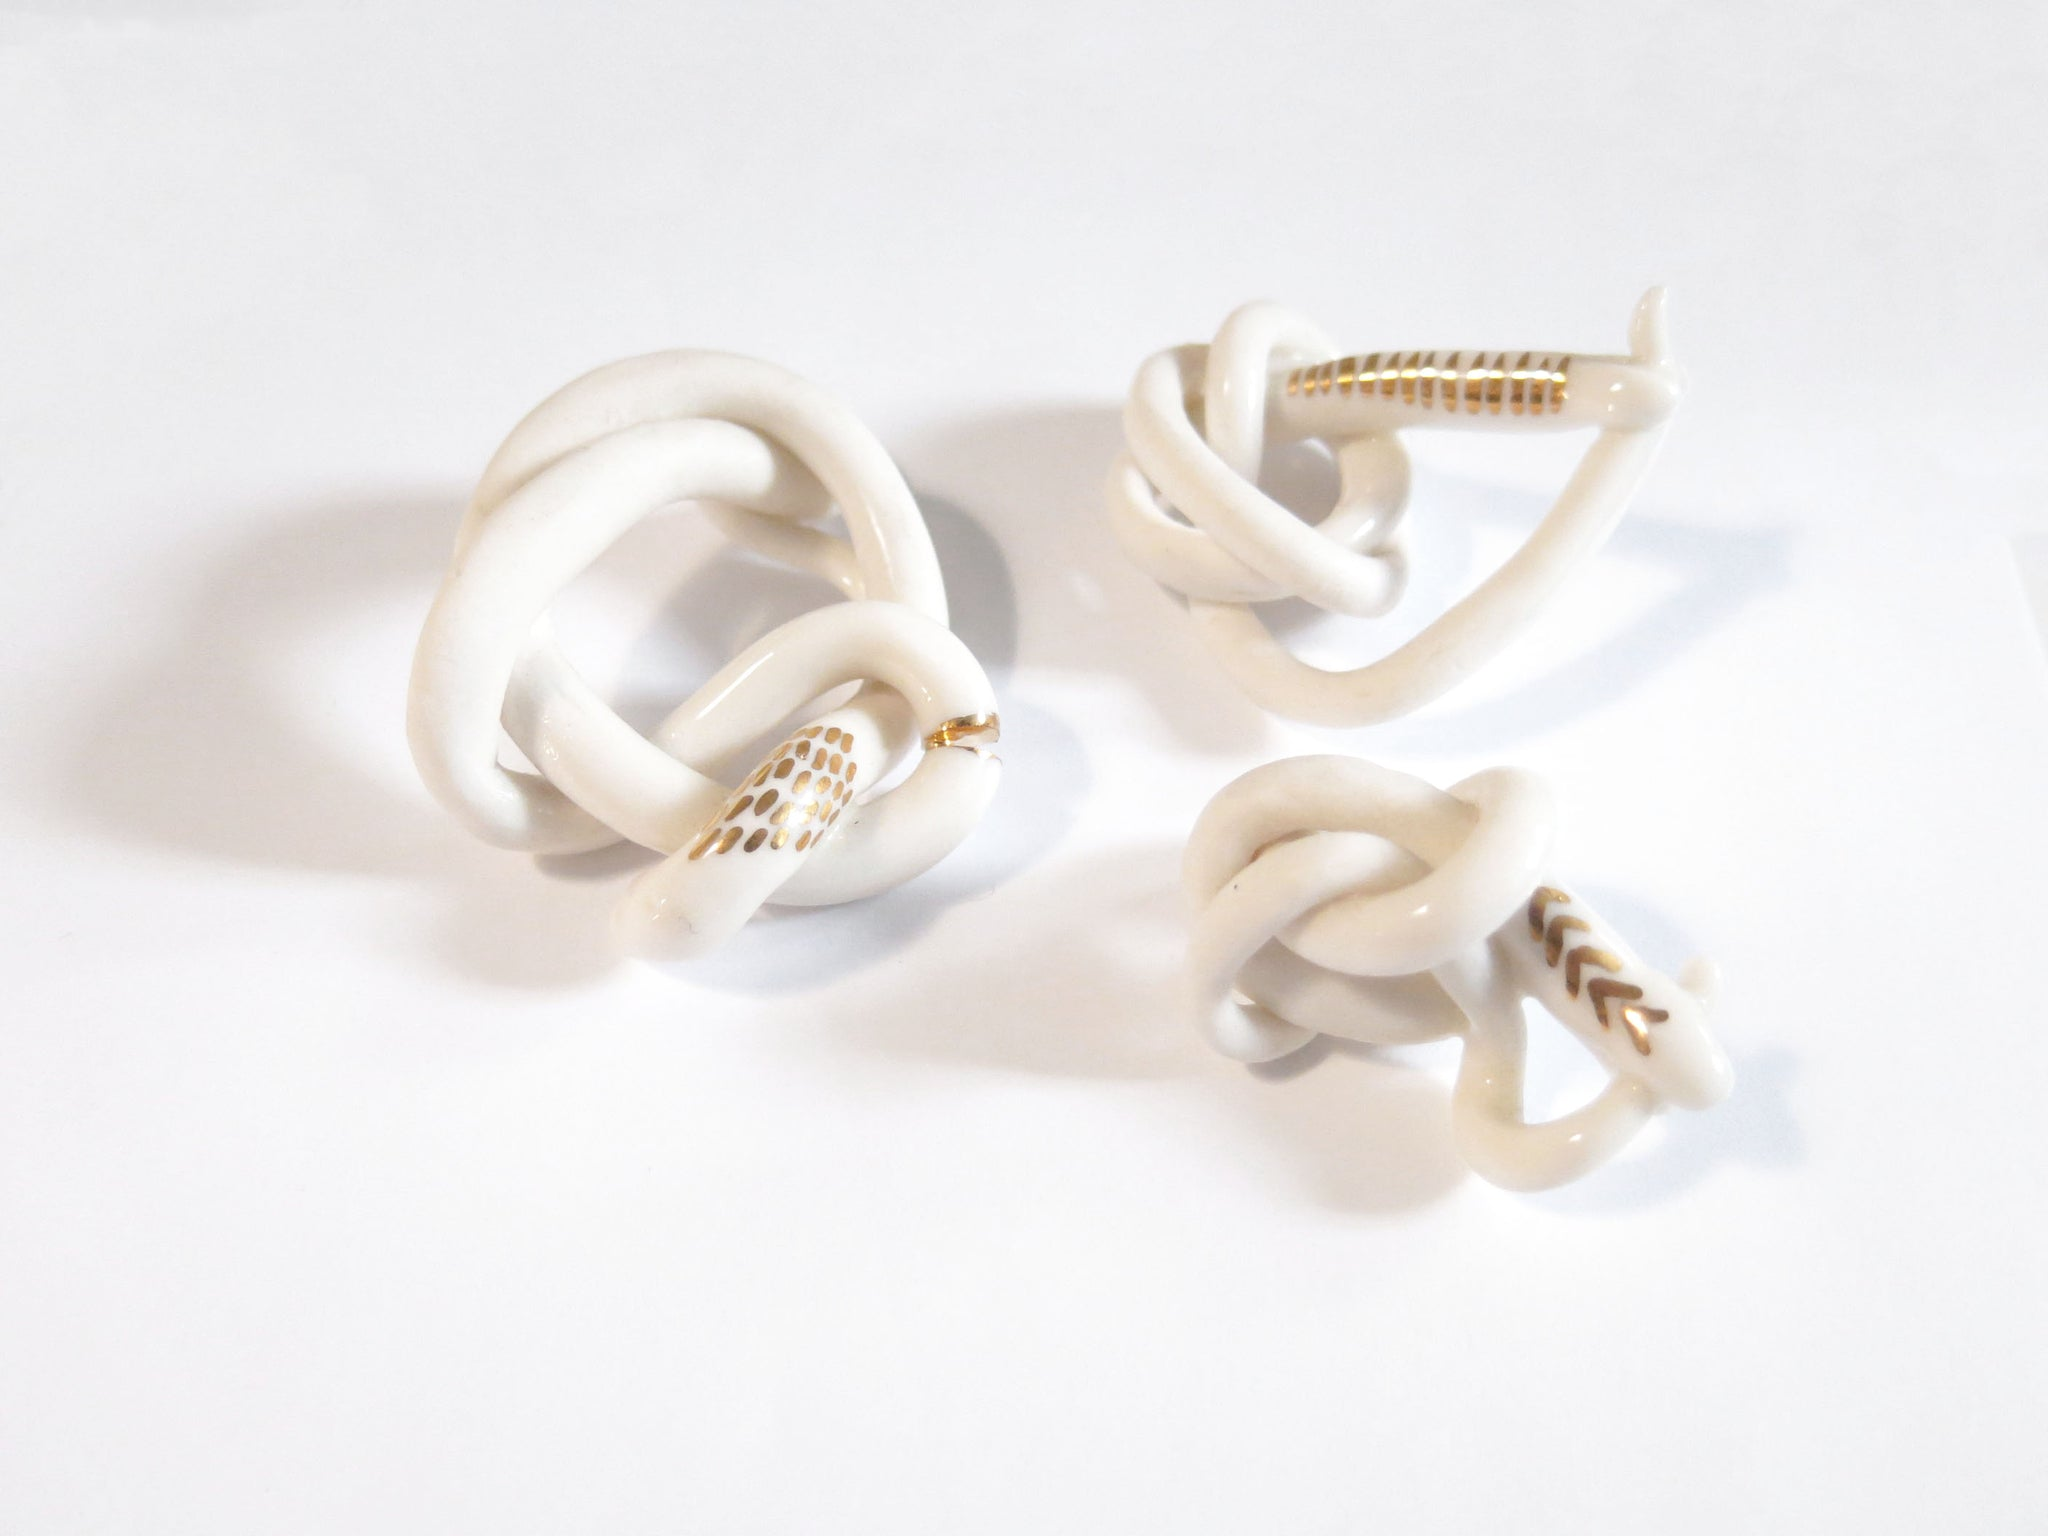 THREE PORCELAIN SNAKES